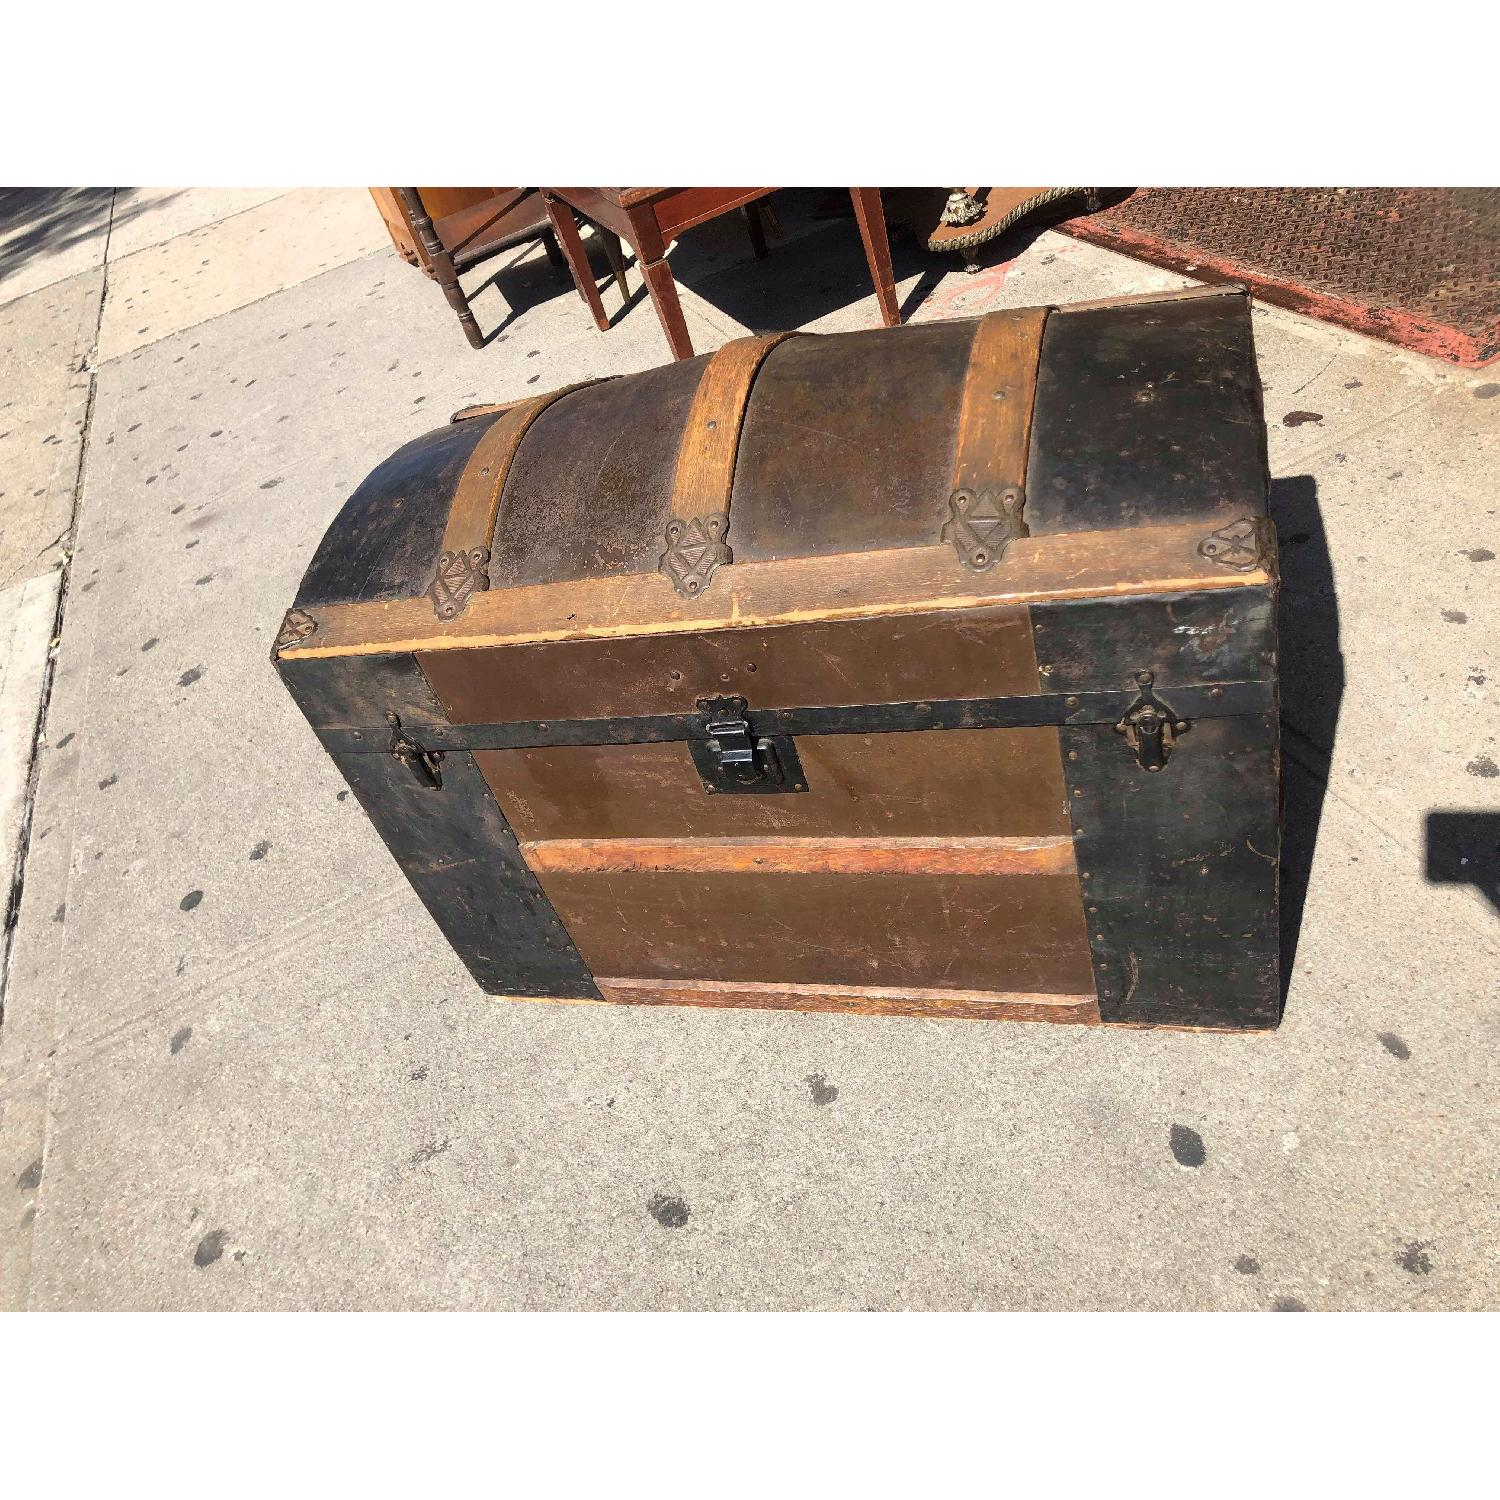 Antique 19th Century Dome Top Storage Trunk w/ Wheels - image-2